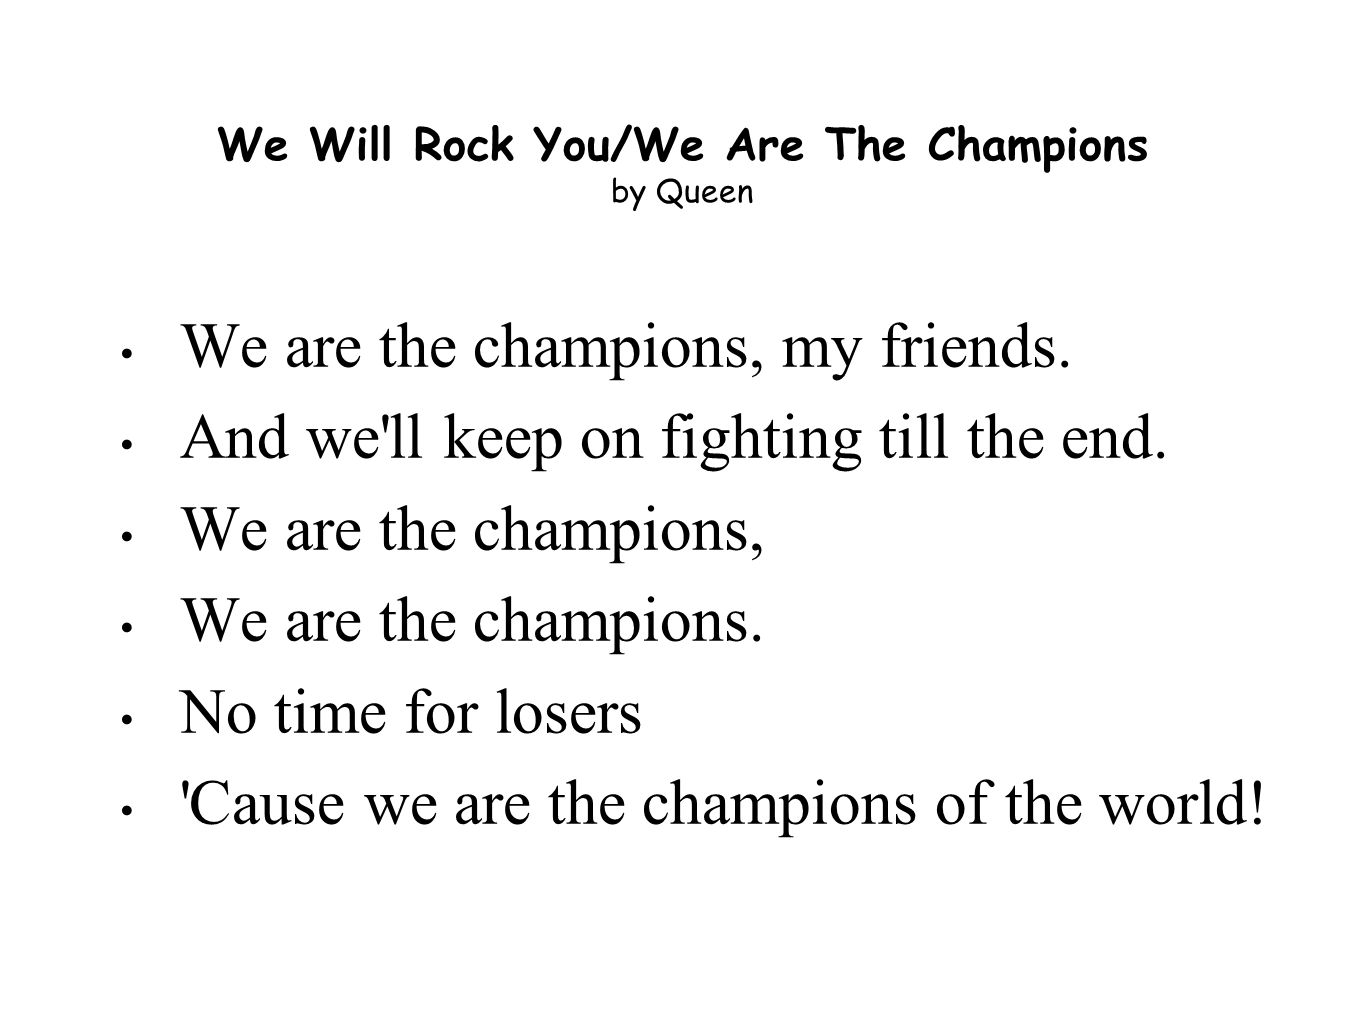 We Will Rock You/We Are The Champions by Queen